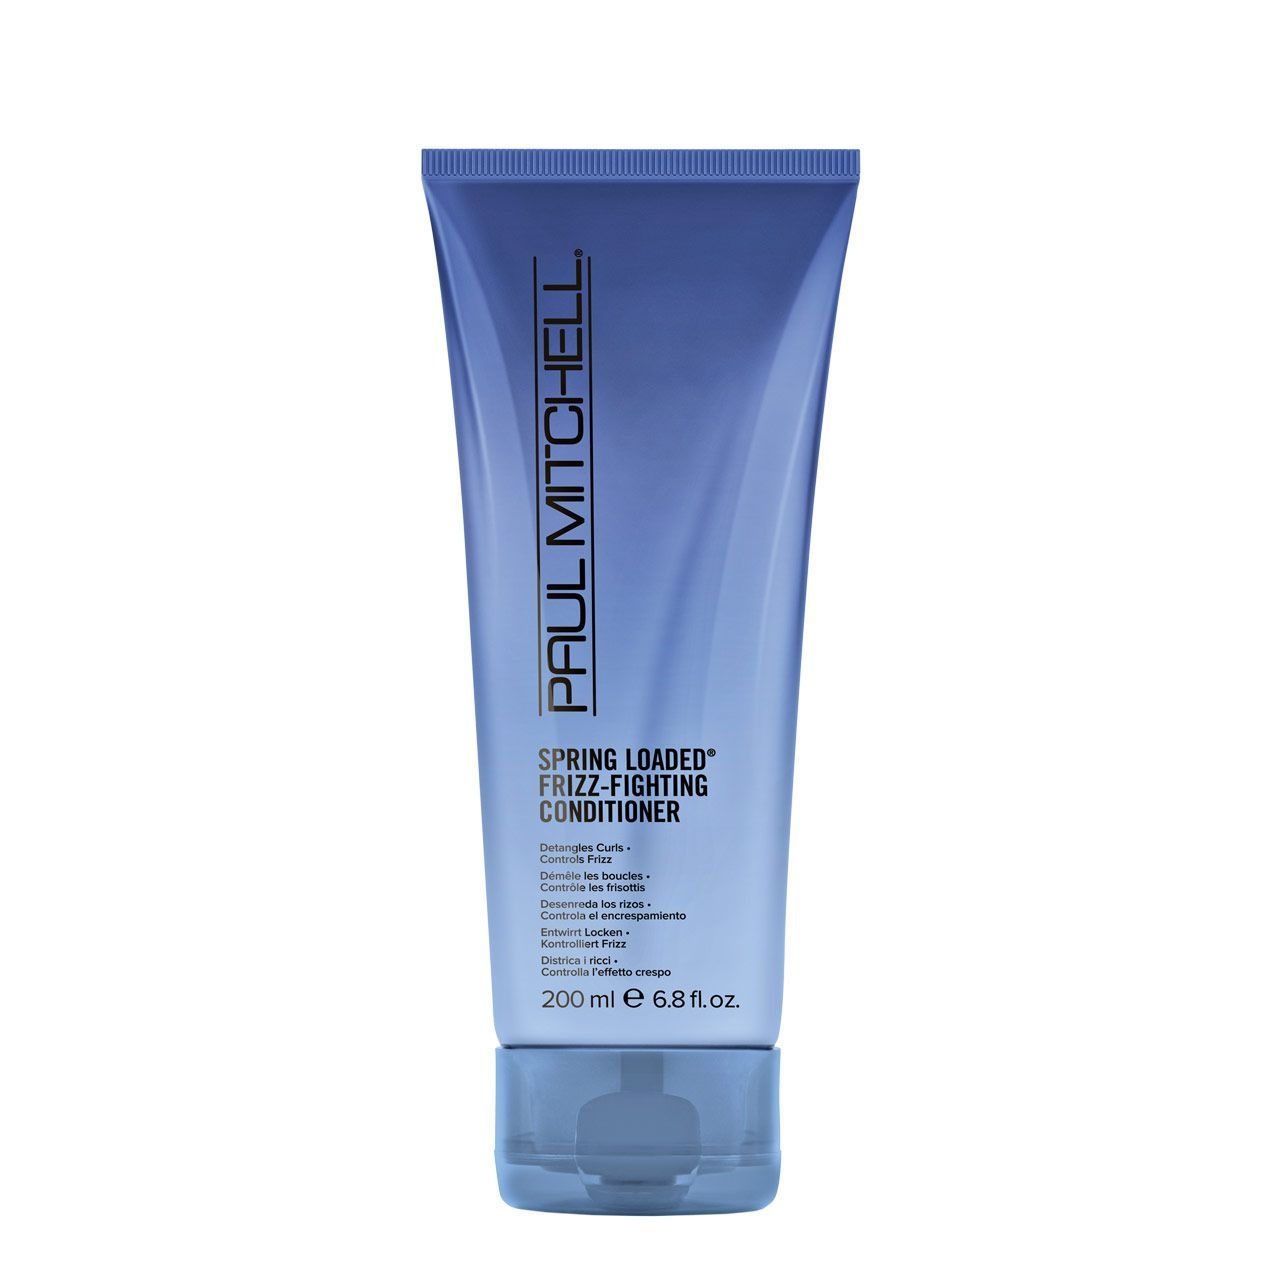 Paul Mitchell Curls Spring Loaded Frizz-fighting Conditioner - 200ml